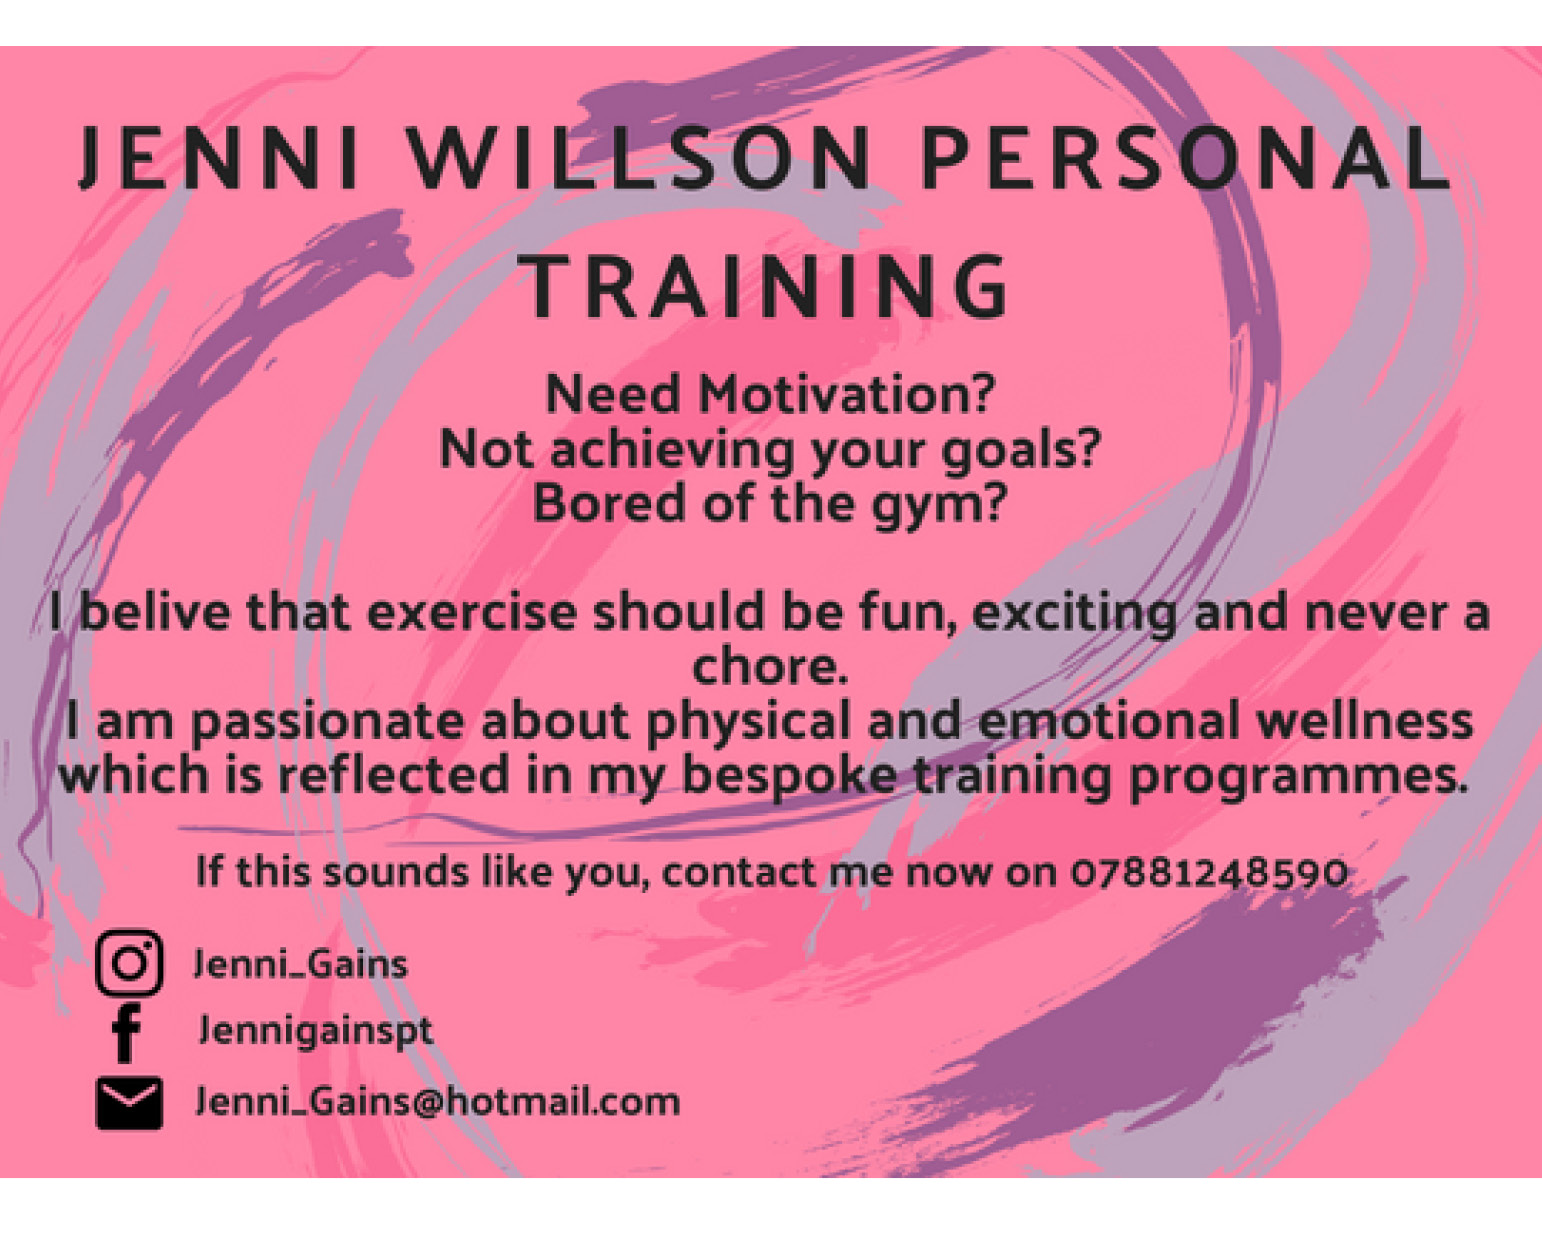 Jenni Wilson Personal Training - Need motivation? Not achieving your goals? Bored of the gym? If this sounds like you, contact Jenni on 07881248590 or email Jenni_Gains@hotmail.com